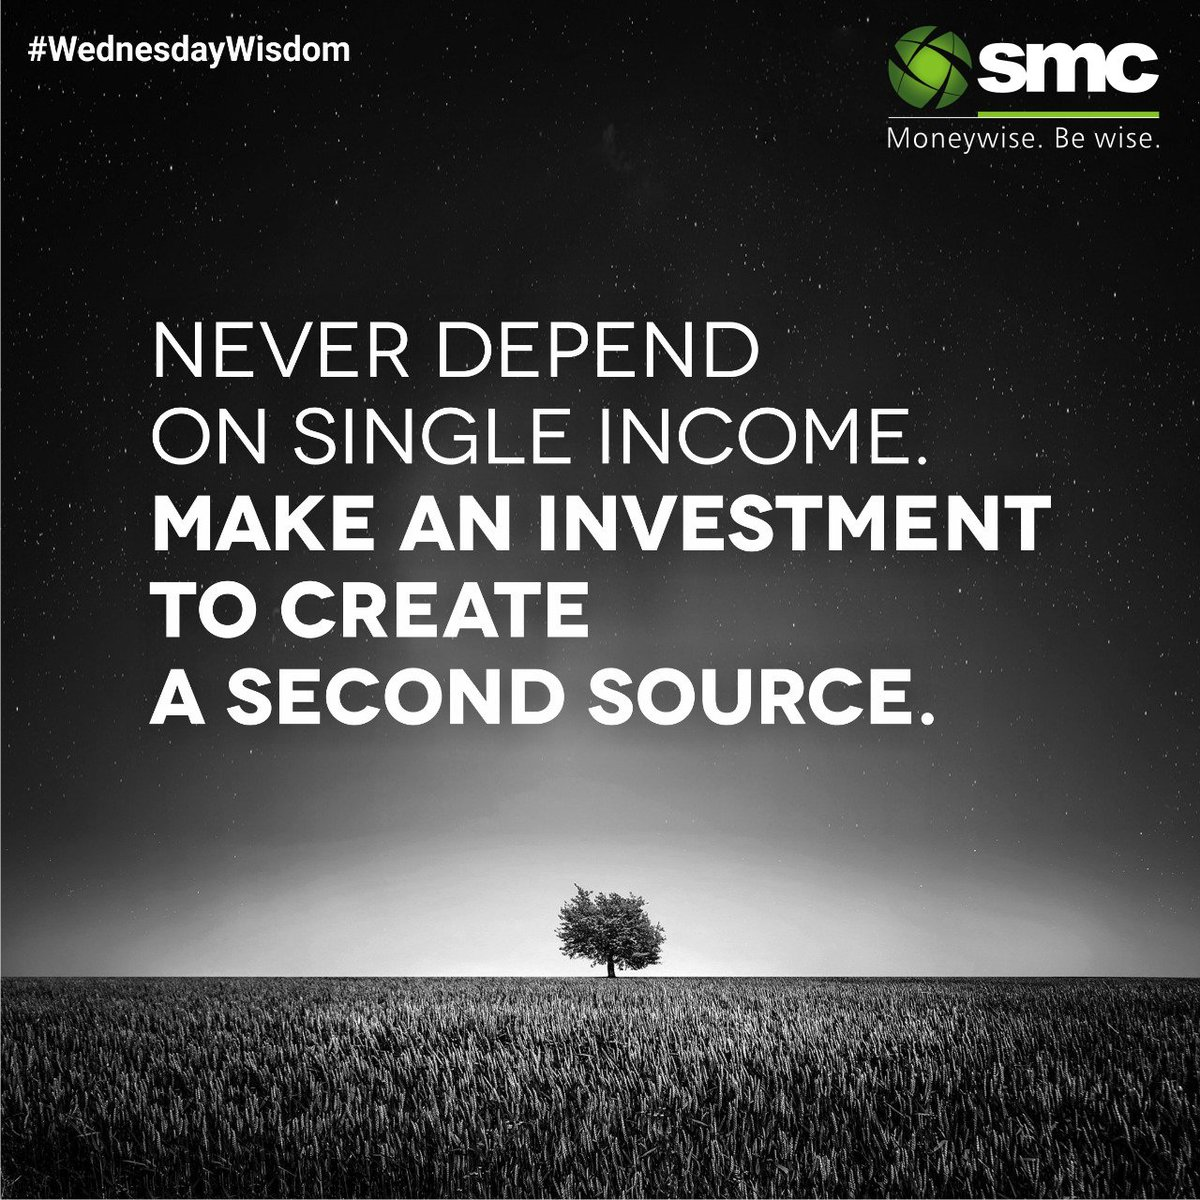 Start a habit of investing consistently & reward yourself by creating a passive source of income for the future.  Open A Free A/c With SMC - https://t.co/1ZRRt2MuEe   #StockTrading #WednesdayWisdom #InvestmentTips #OnlineTrading #SMC https://t.co/lYNZVGnkFs